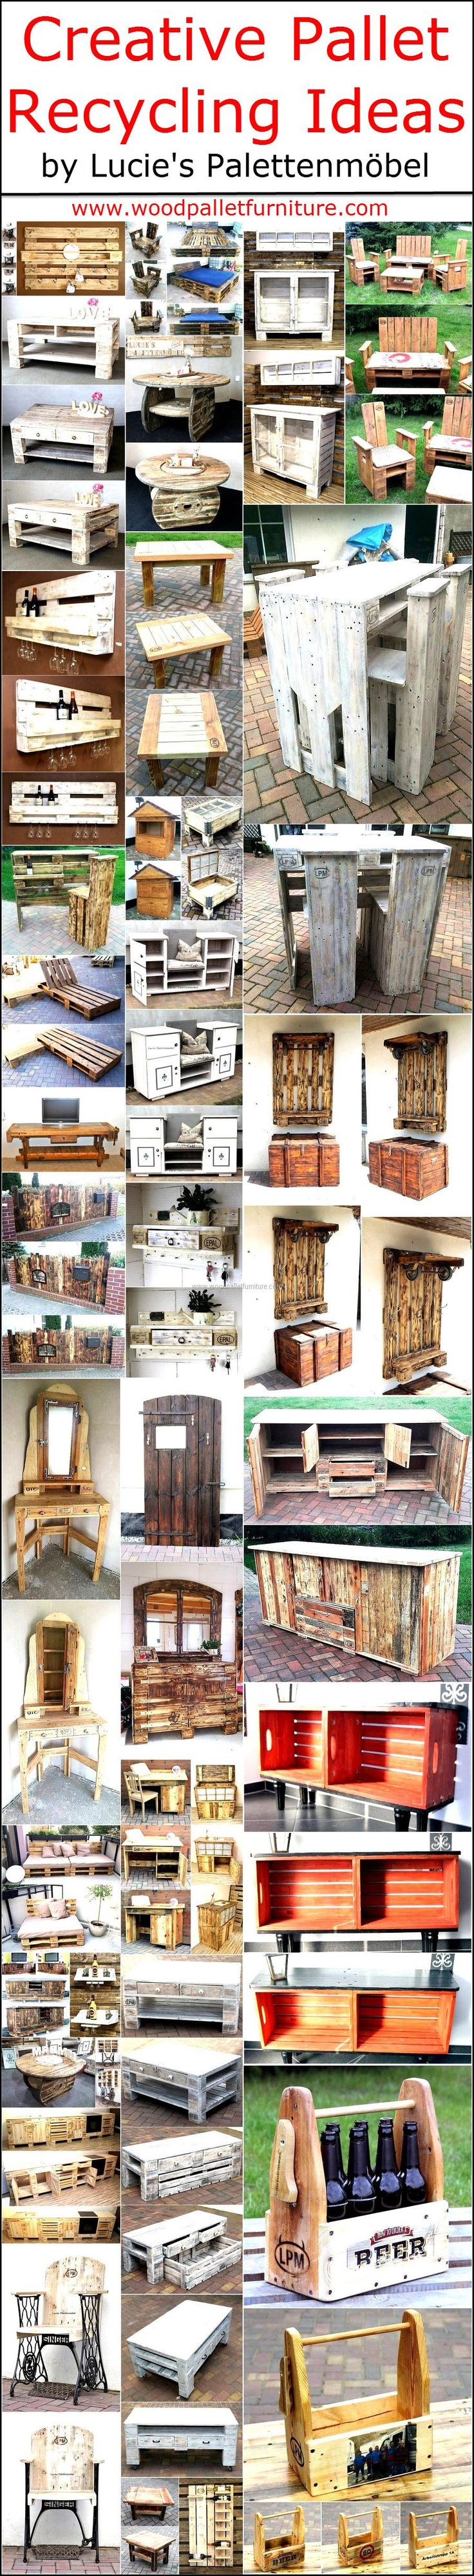 Every person thinks differently, that's why every single individual who invests time in creating the items using the wooden pallets end up in getting something unique. It is not possible that the handmade furniture made up of wood pallets by a person matches the design or style of another person, but it is easy to copy by those who know the art of modifying the pallets.  Here are some creative wooden pallet recycling ideas by Lucie's Palettenmöbel, which are praiseworthy and can impress…